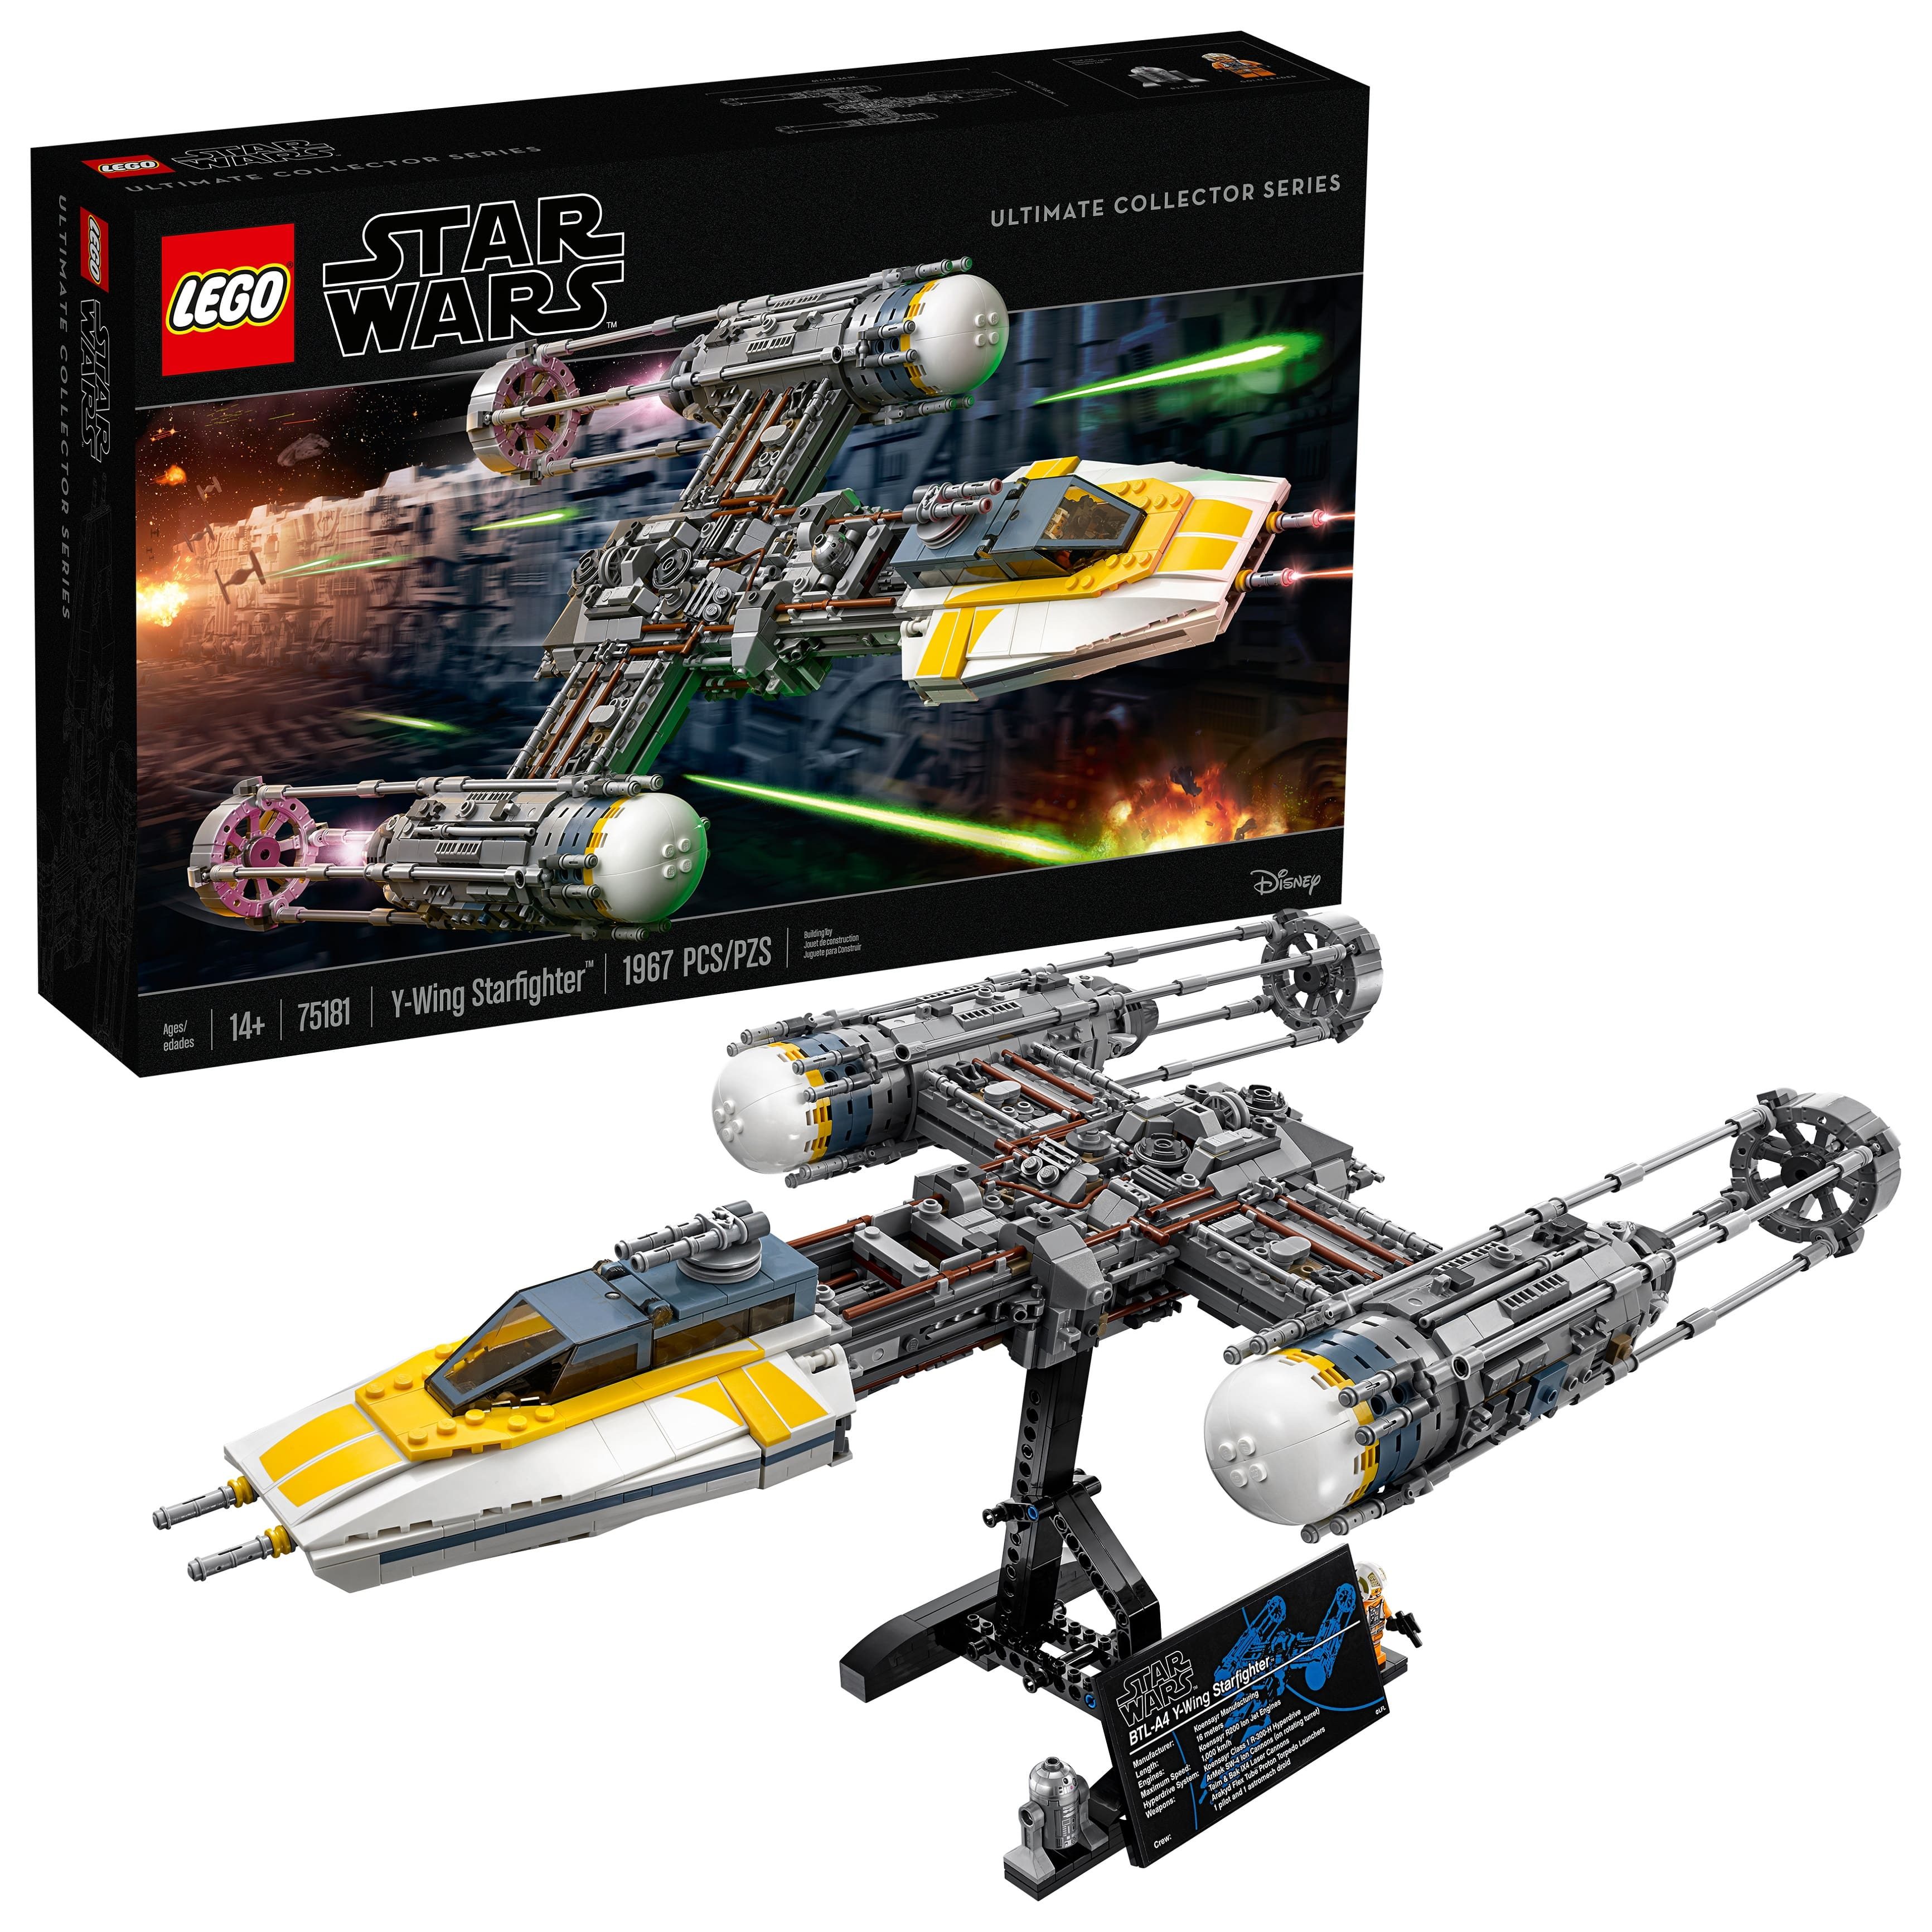 bc5a04e3cca90 LEGO Star Wars Y-Wing Starfighter (75181) - Slickdeals.net